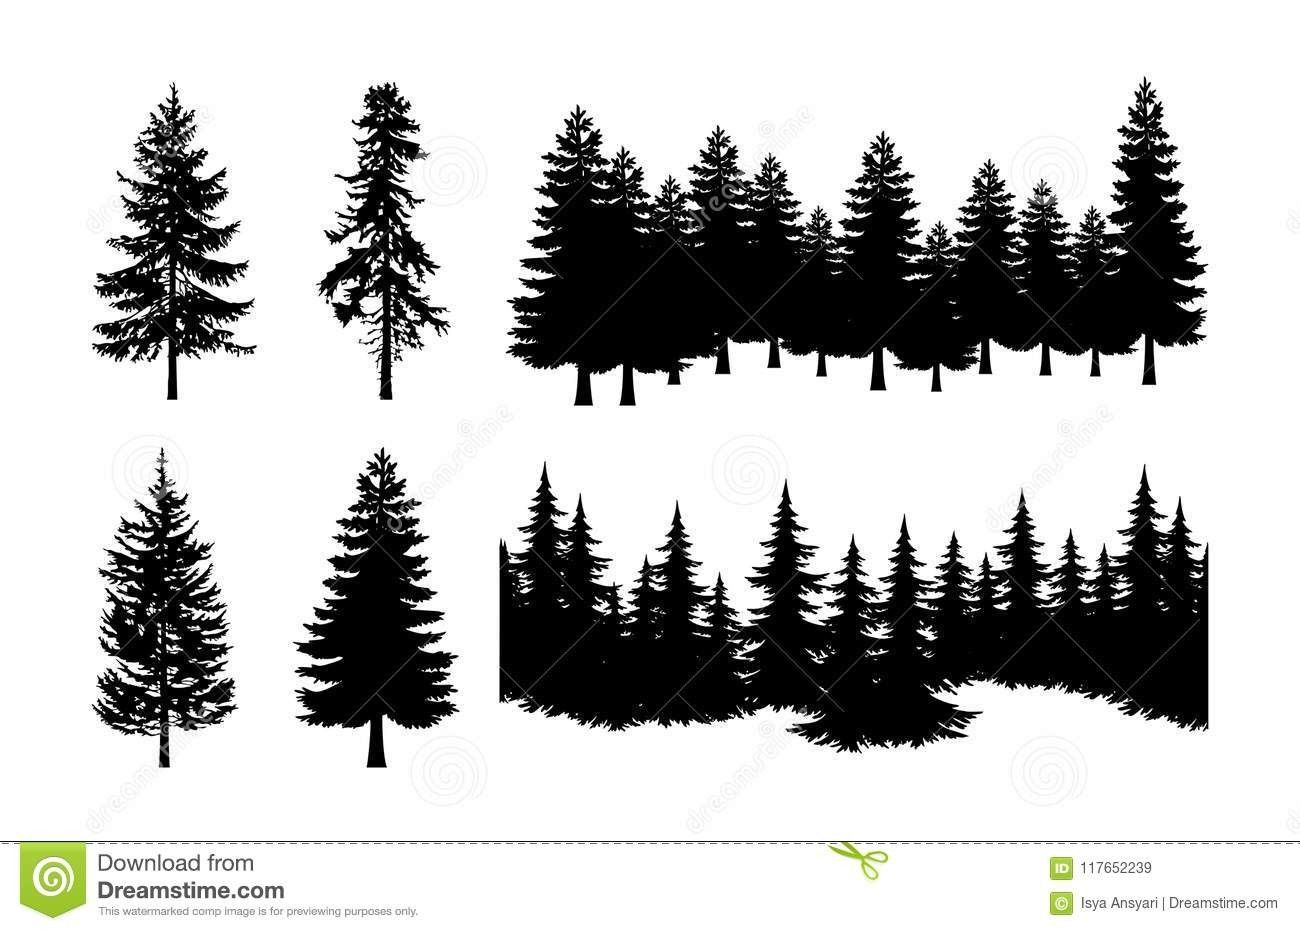 Pin by Teri Charno on trees Tree silhouette, Pine tree